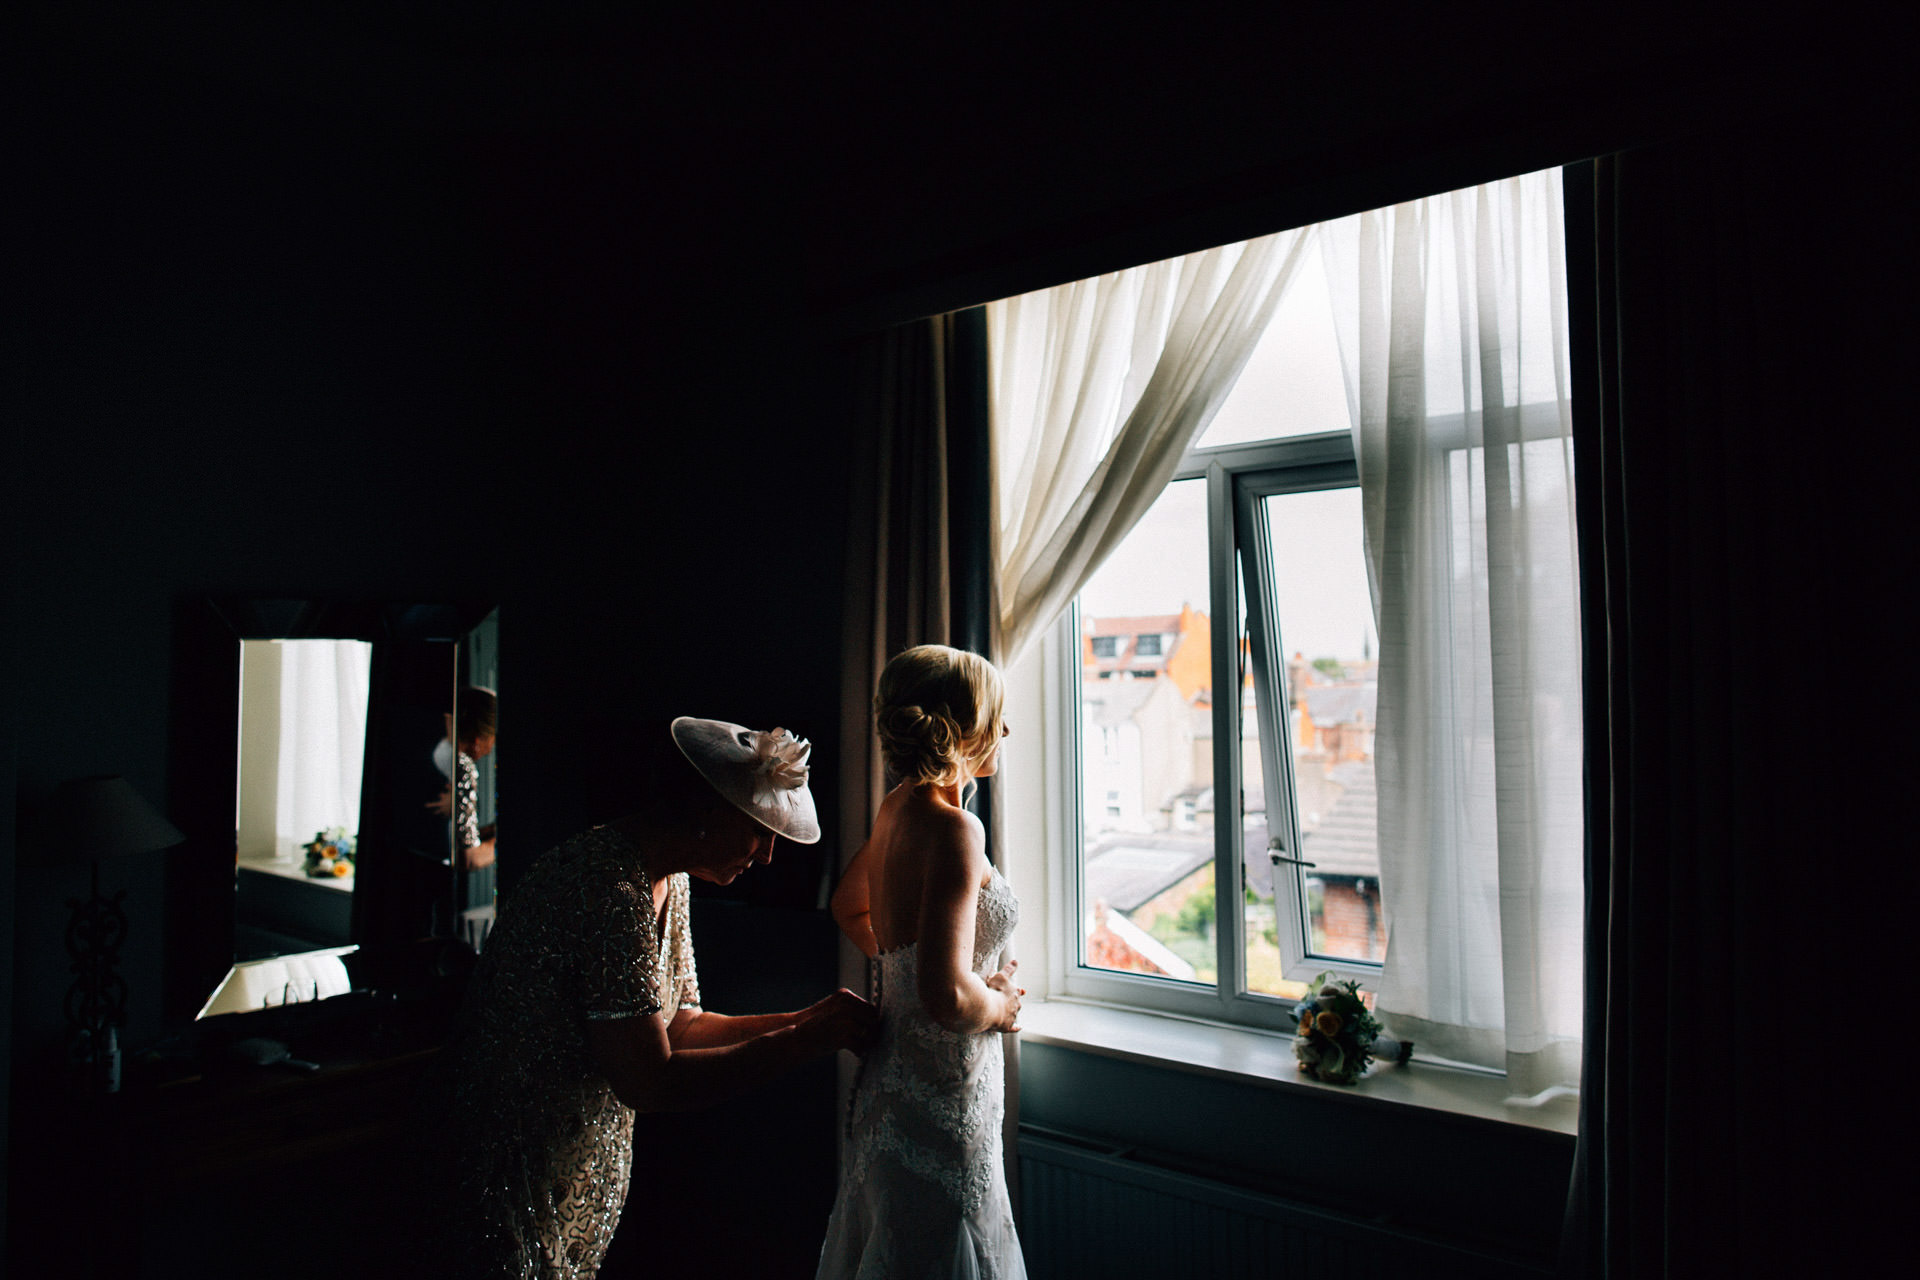 Best wedding photography 2016 - bride having her dress done up in window